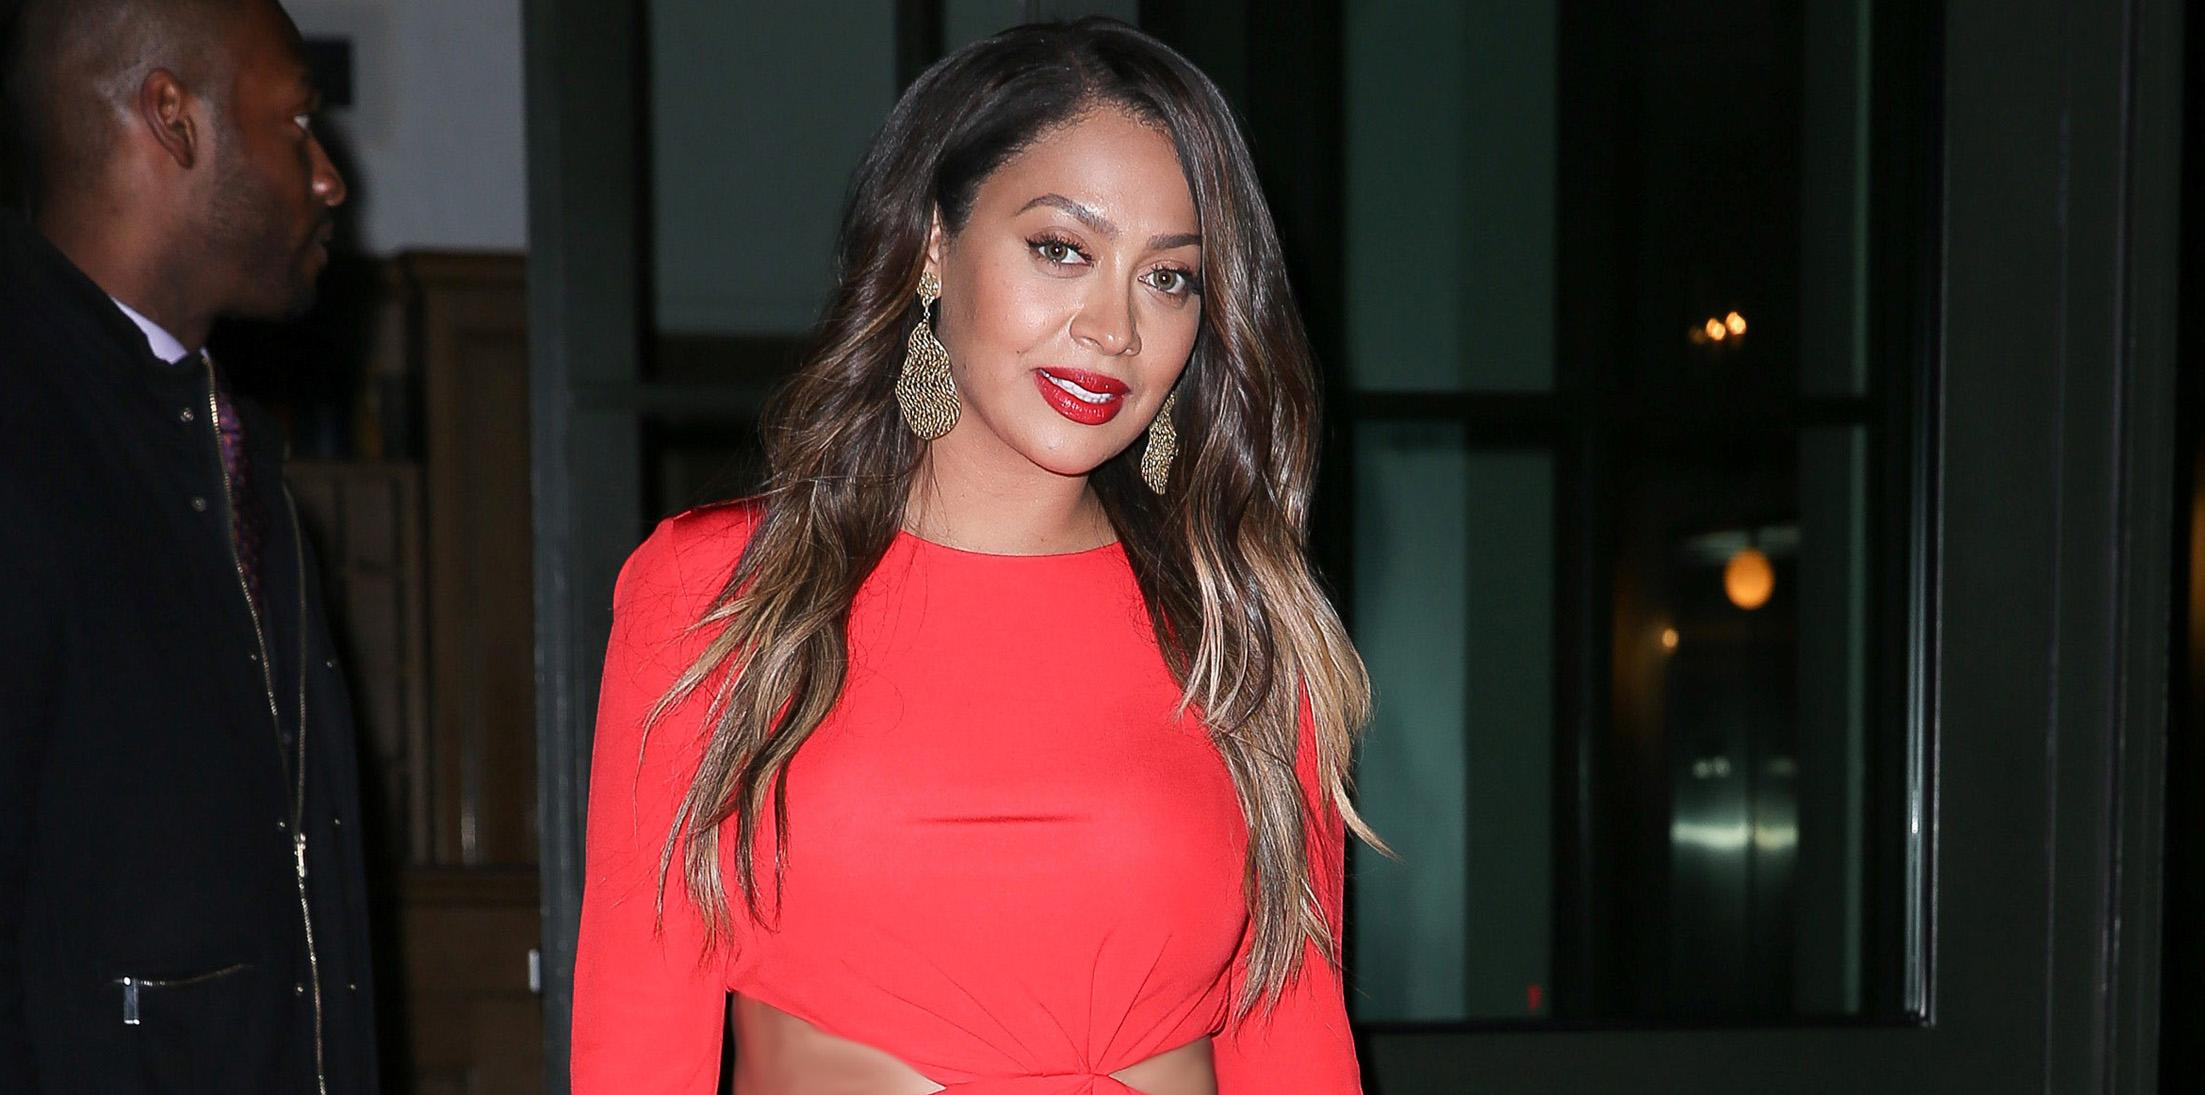 La La Anthony struts in a red dress exiting her hotel in SoHo